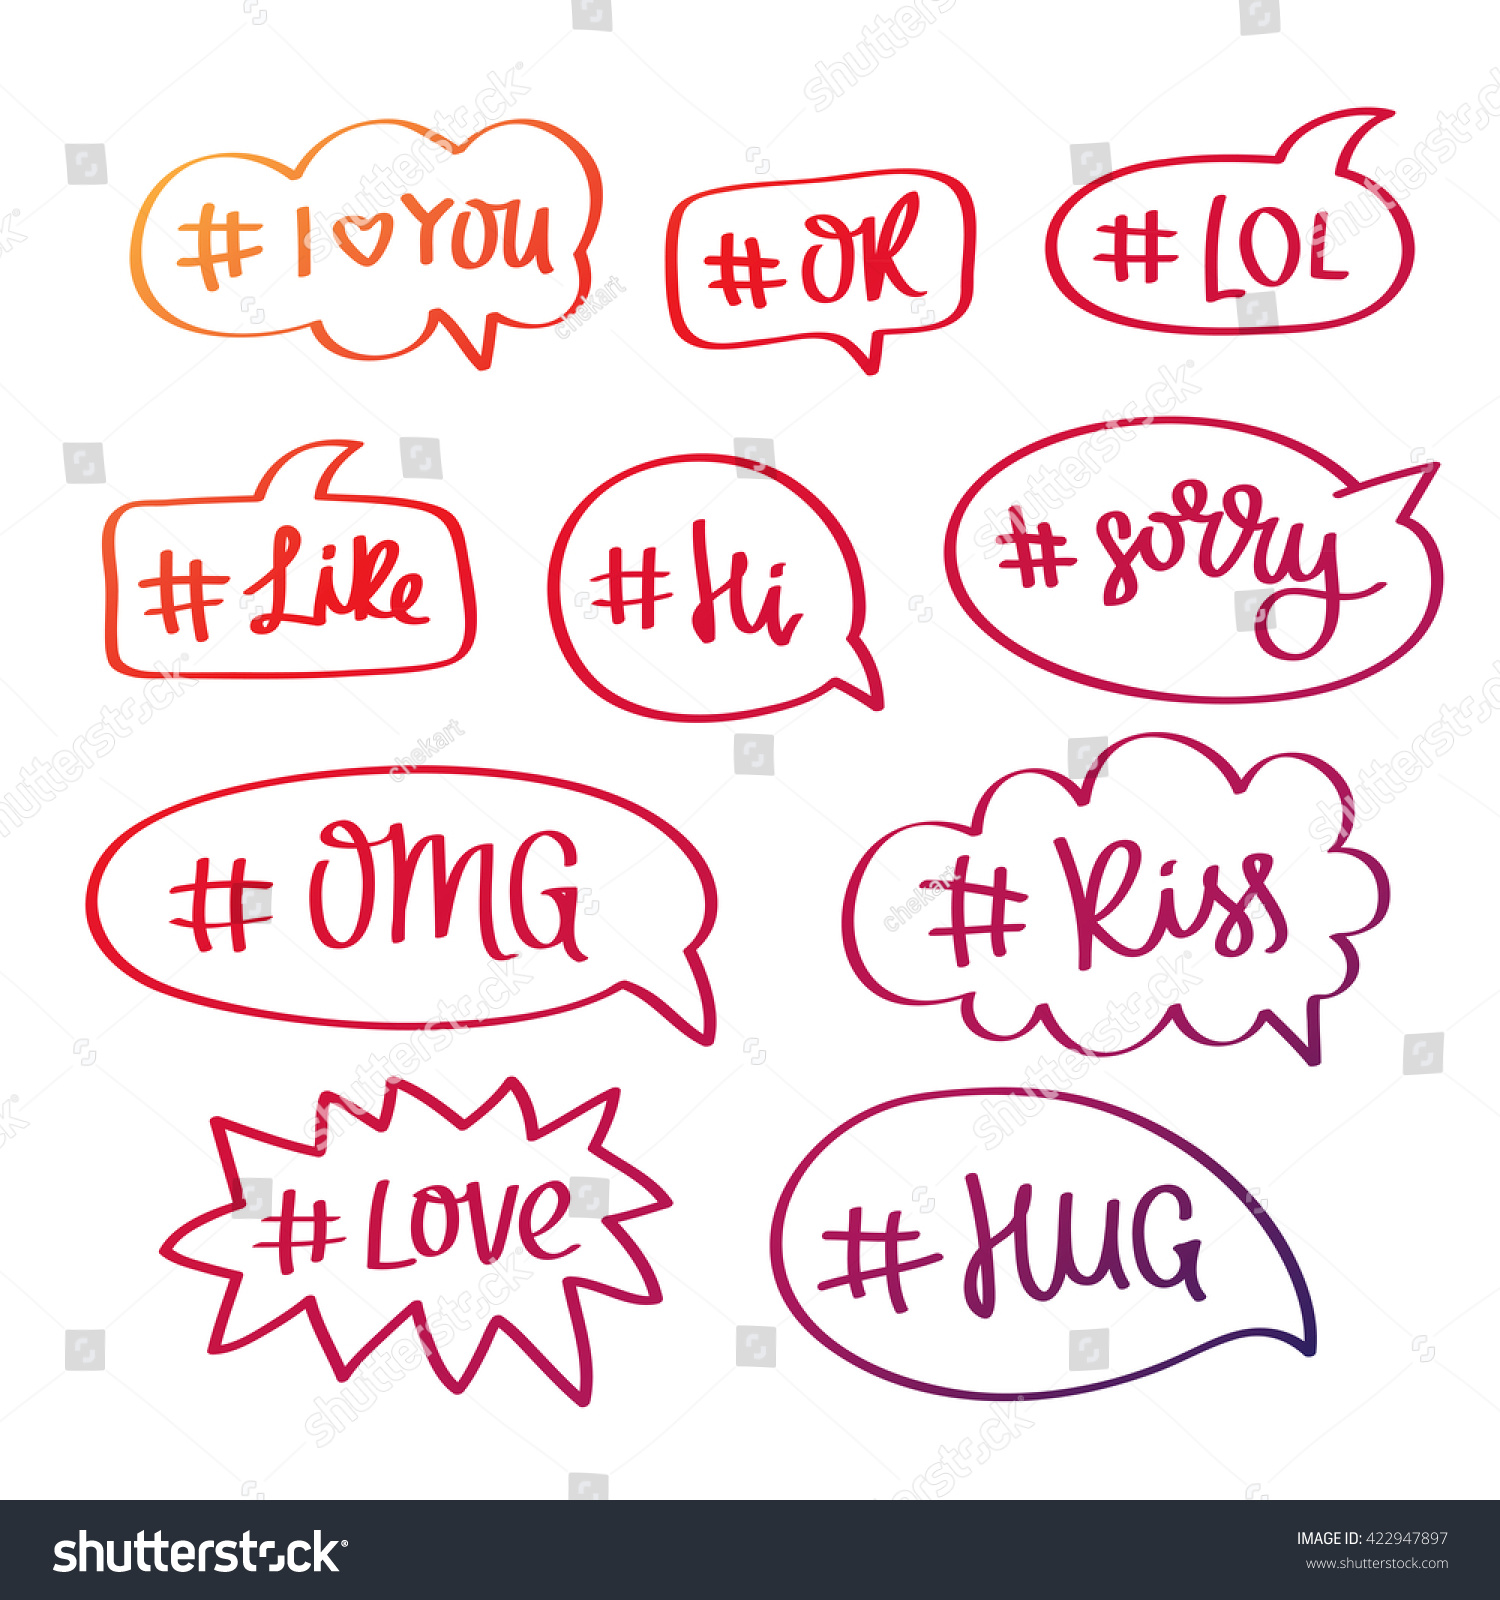 Set words hashtag bubble trend calligraphy stock vector